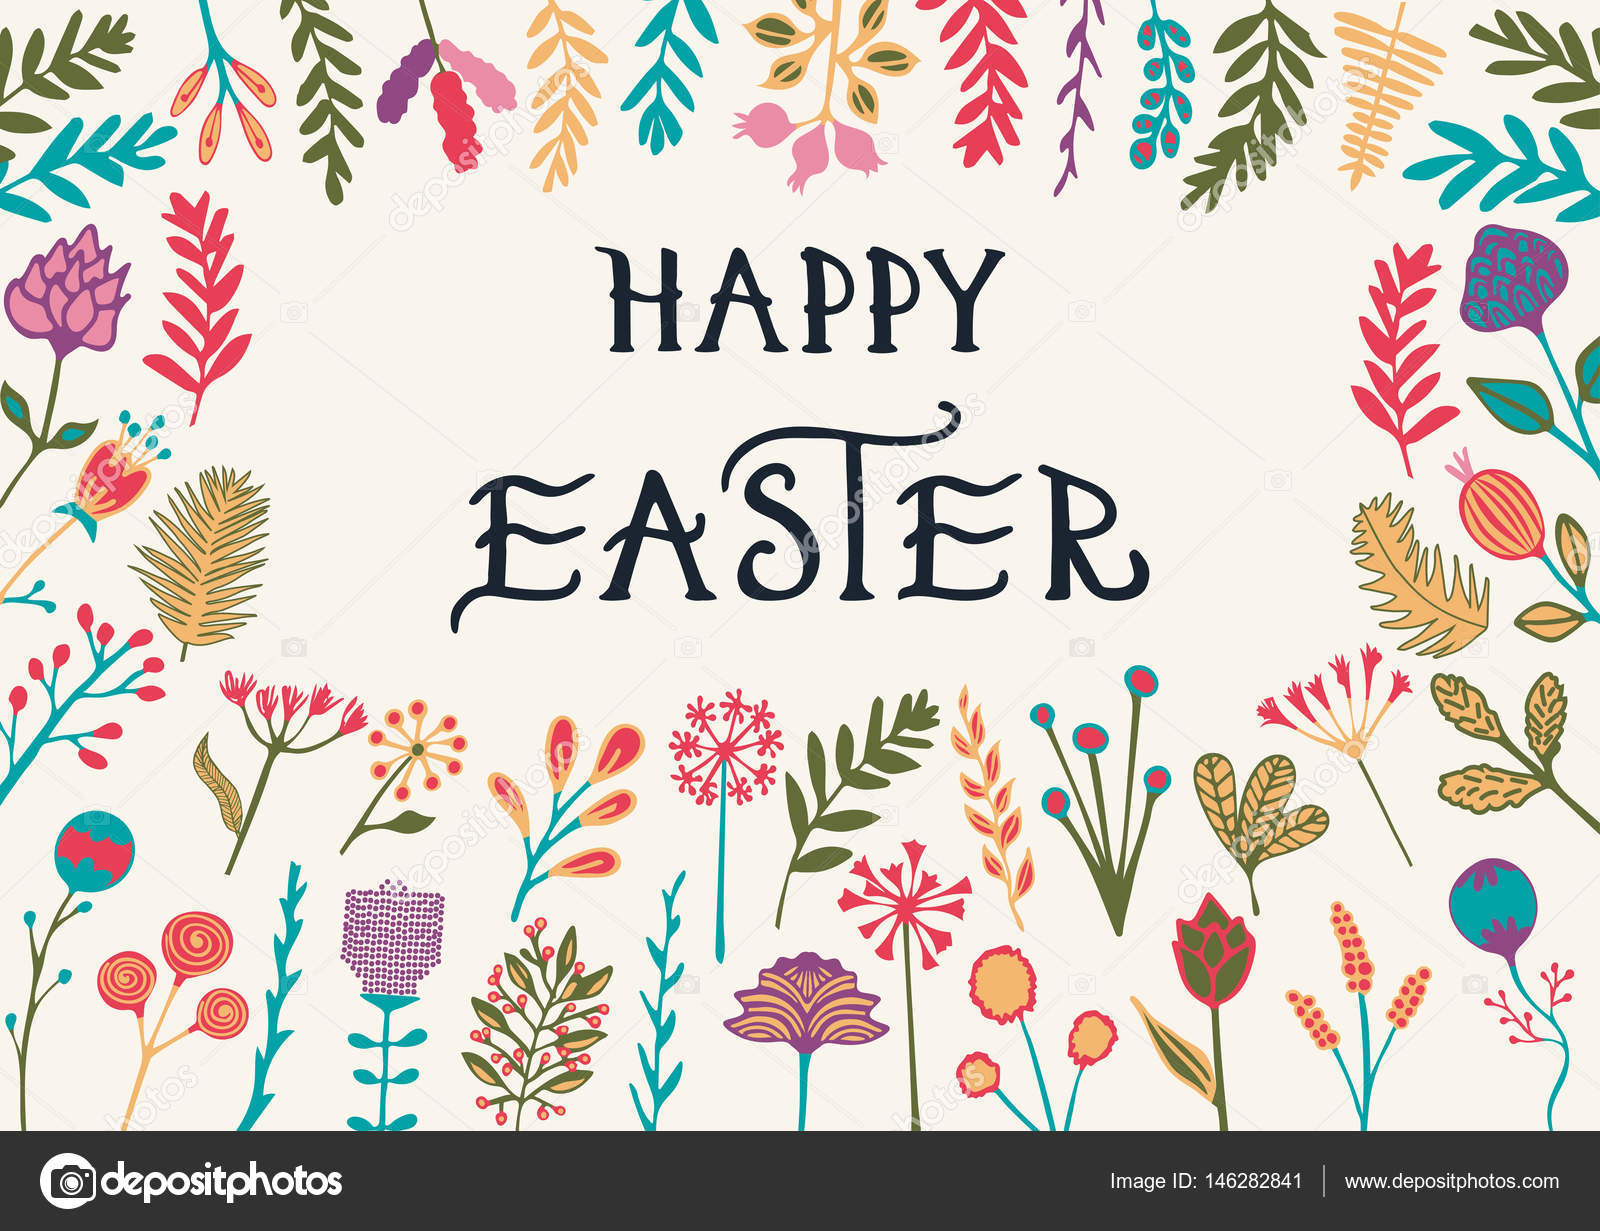 Happy Easter Greeting Card With Hand Drawn Lettering Stock Vector